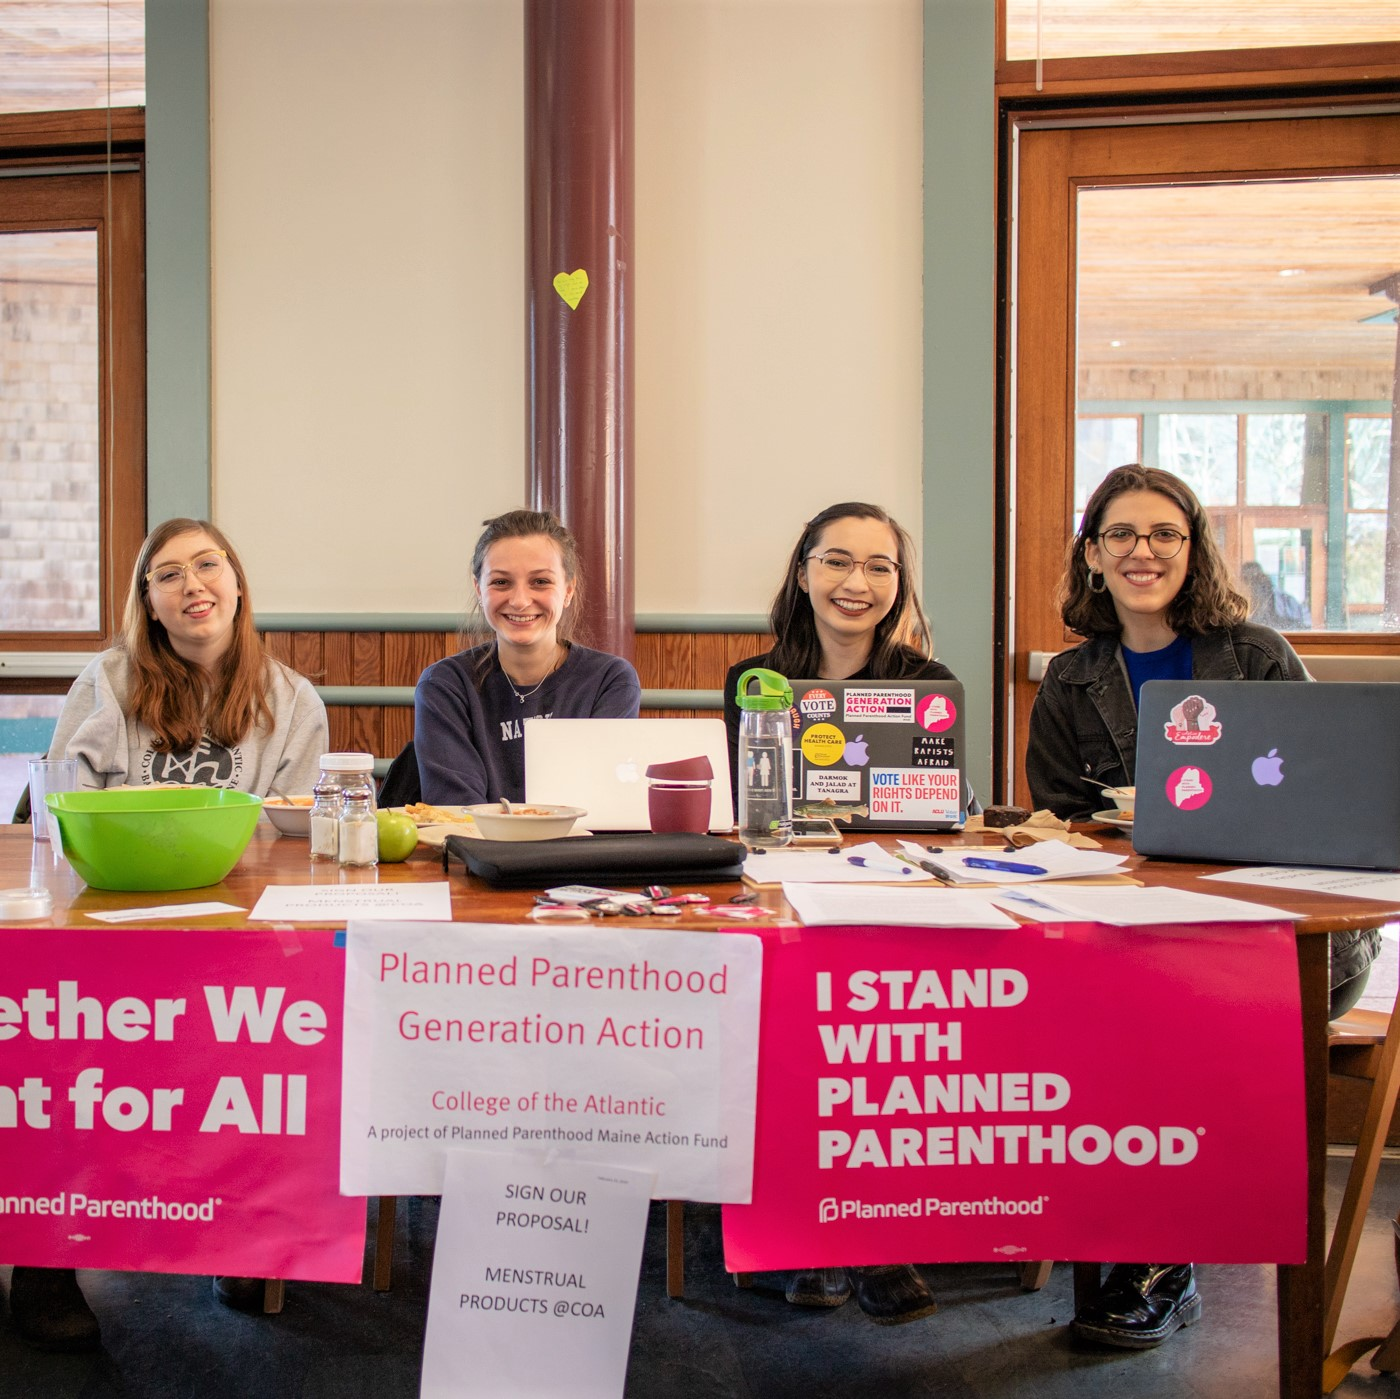 Members of the College of the Atlantic chapter of Planned Parenthood Generation Action collect signatures for a policy proposal that would provide menstrual products in bathrooms across campus. COA All College Meeting is due to vote on the proposal at the beginning of spring term! . . #campuslife #plannedparenthood #socialactivism #equity #studentlife #collegeoftheatlantic #collegestudent #sustainability #socialjustice #selfdirectededucation #coolschool #maine #barharbor #photocred: Yoi Ashida '20/COA News @ppact @ppmeaf @ppgenaction_coa